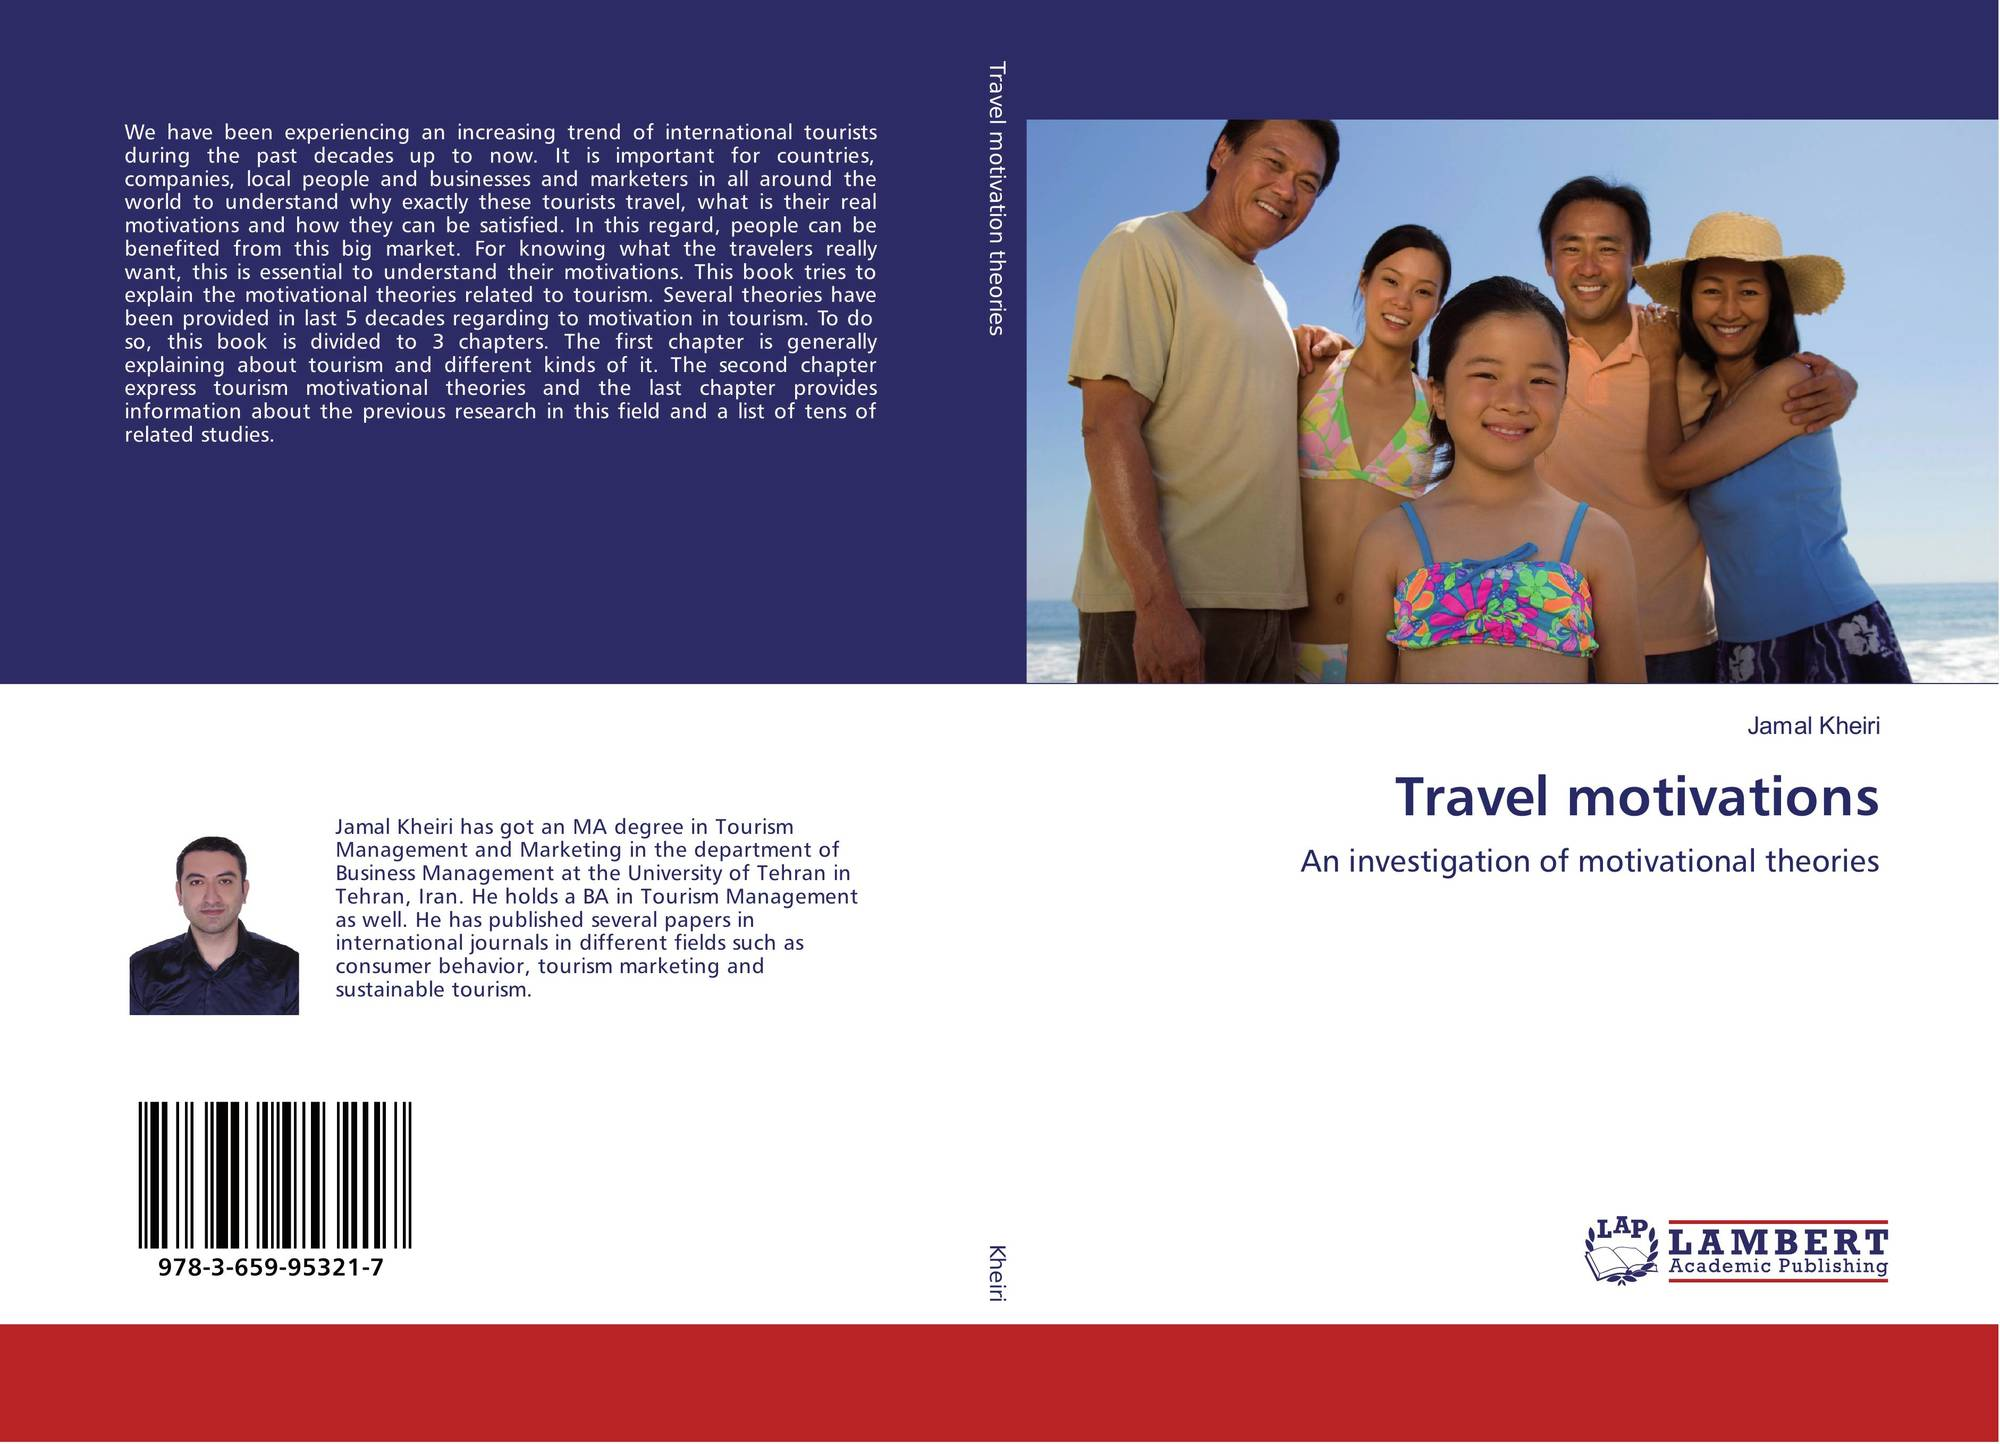 """motivational theories for travel and tourism International leisure tourists in ho chi minh city  tourism context, travel motivation is defined as """"a set of disconfirmation theory."""